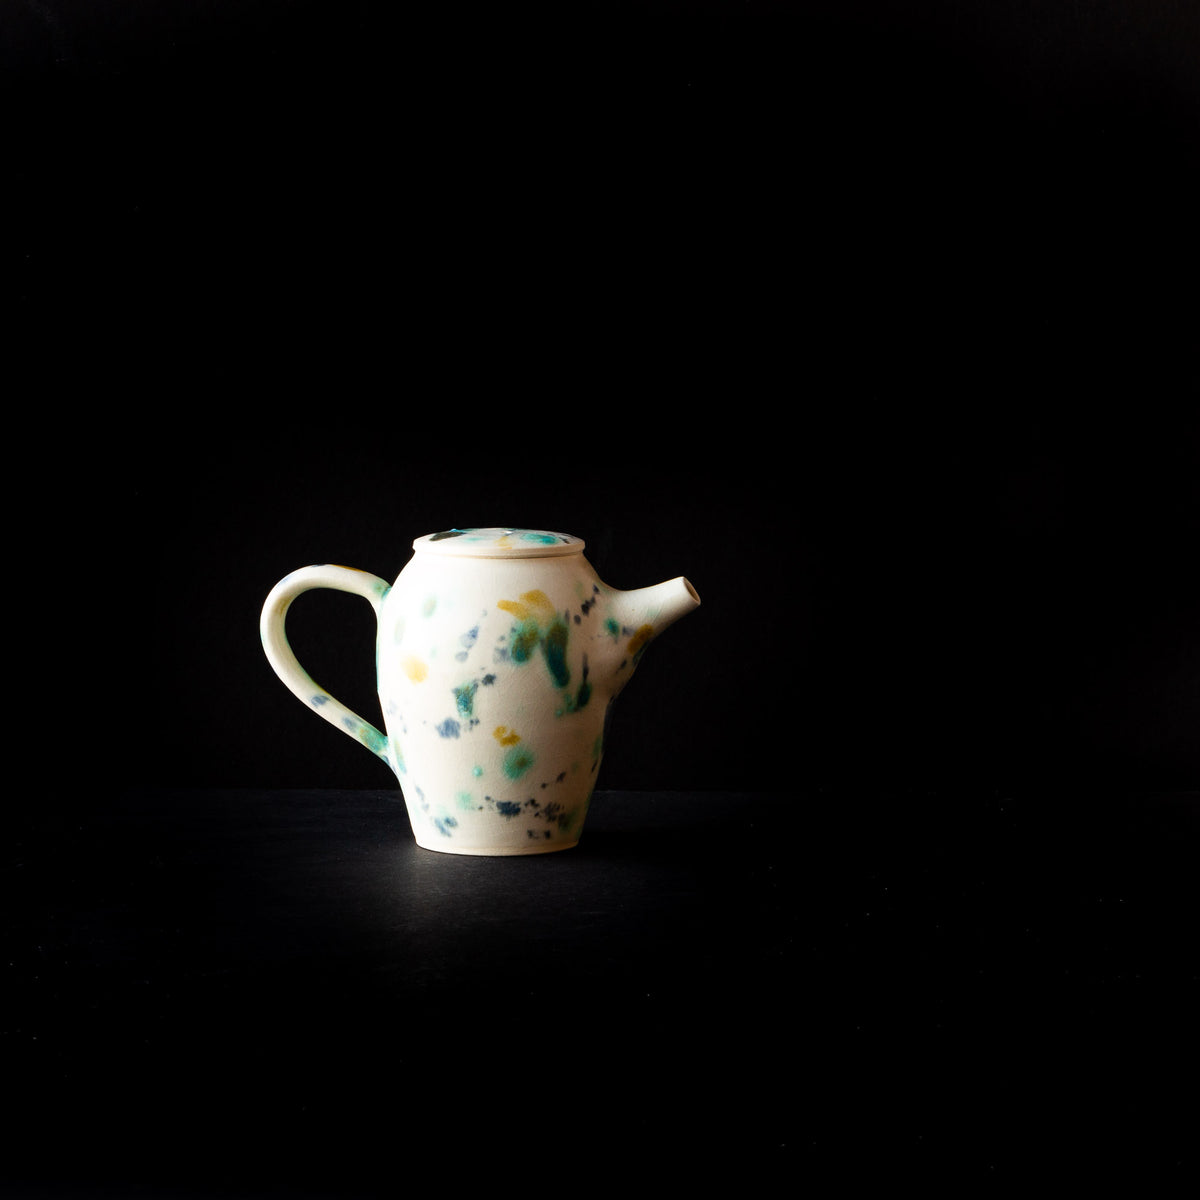 Hanabira - Small Handmade Ceramic Teapot on Black Background - Sold by Chic & Basta